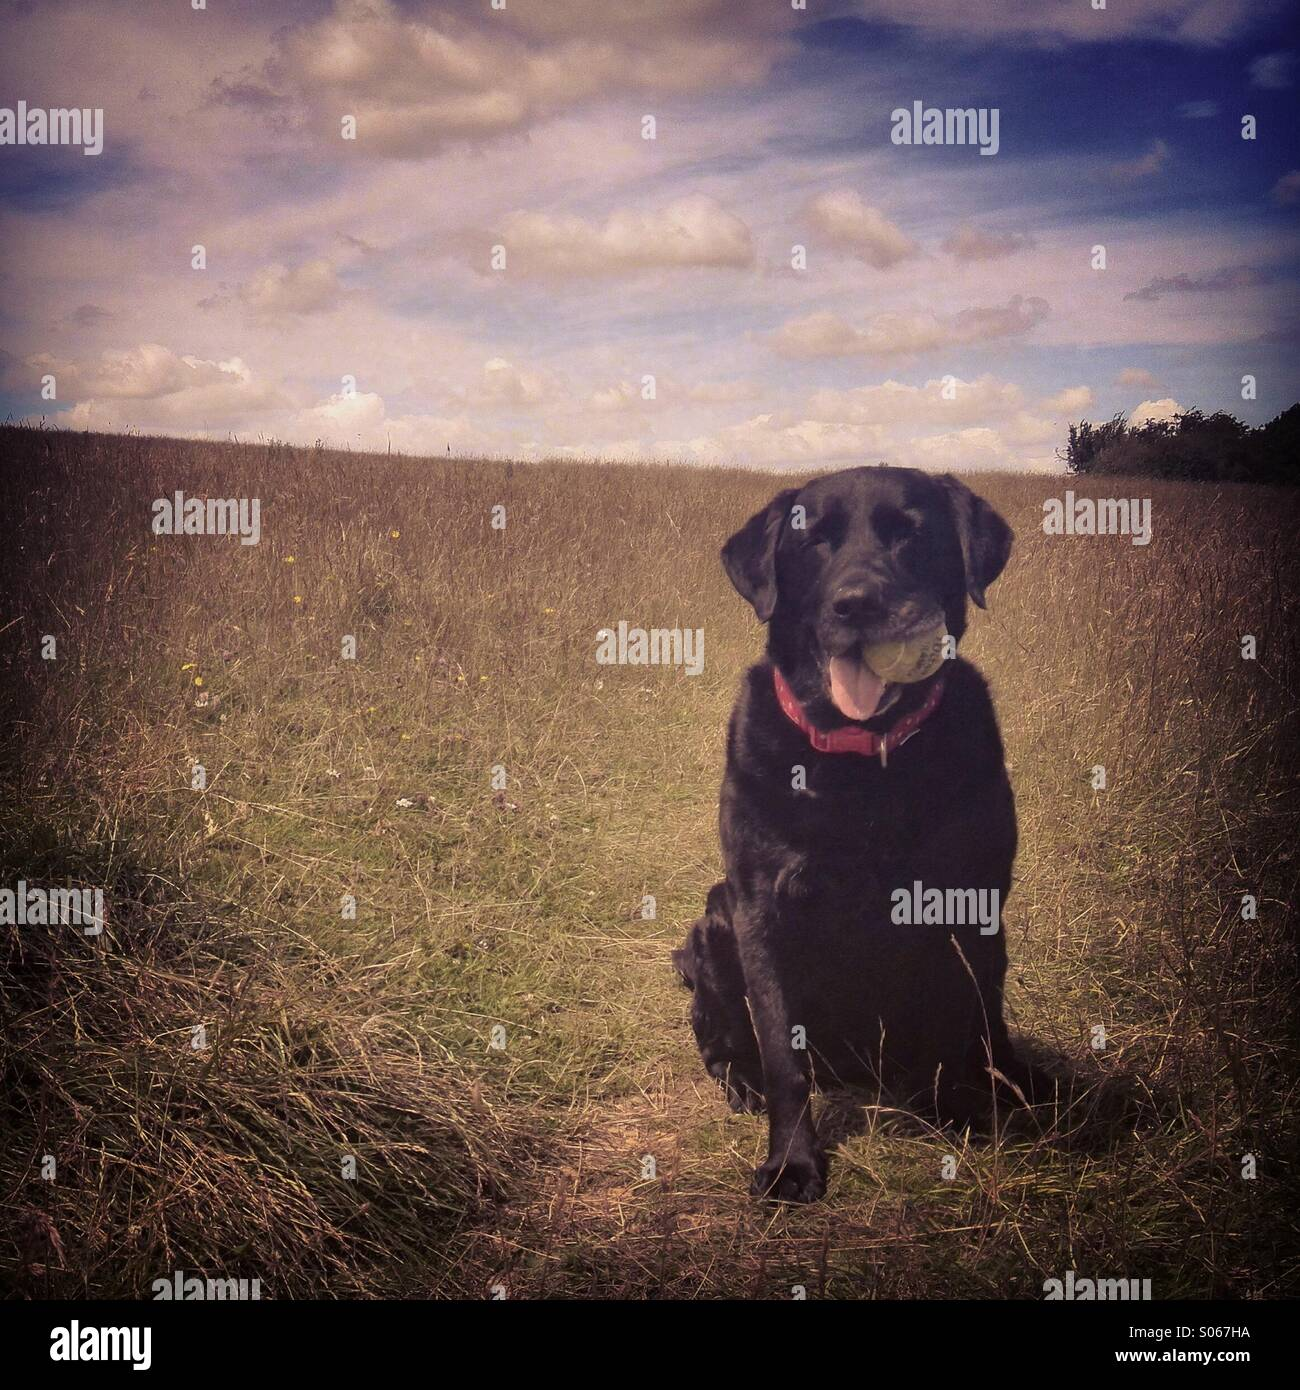 Black Labrador waits with a ball to play fetch - Stock Image